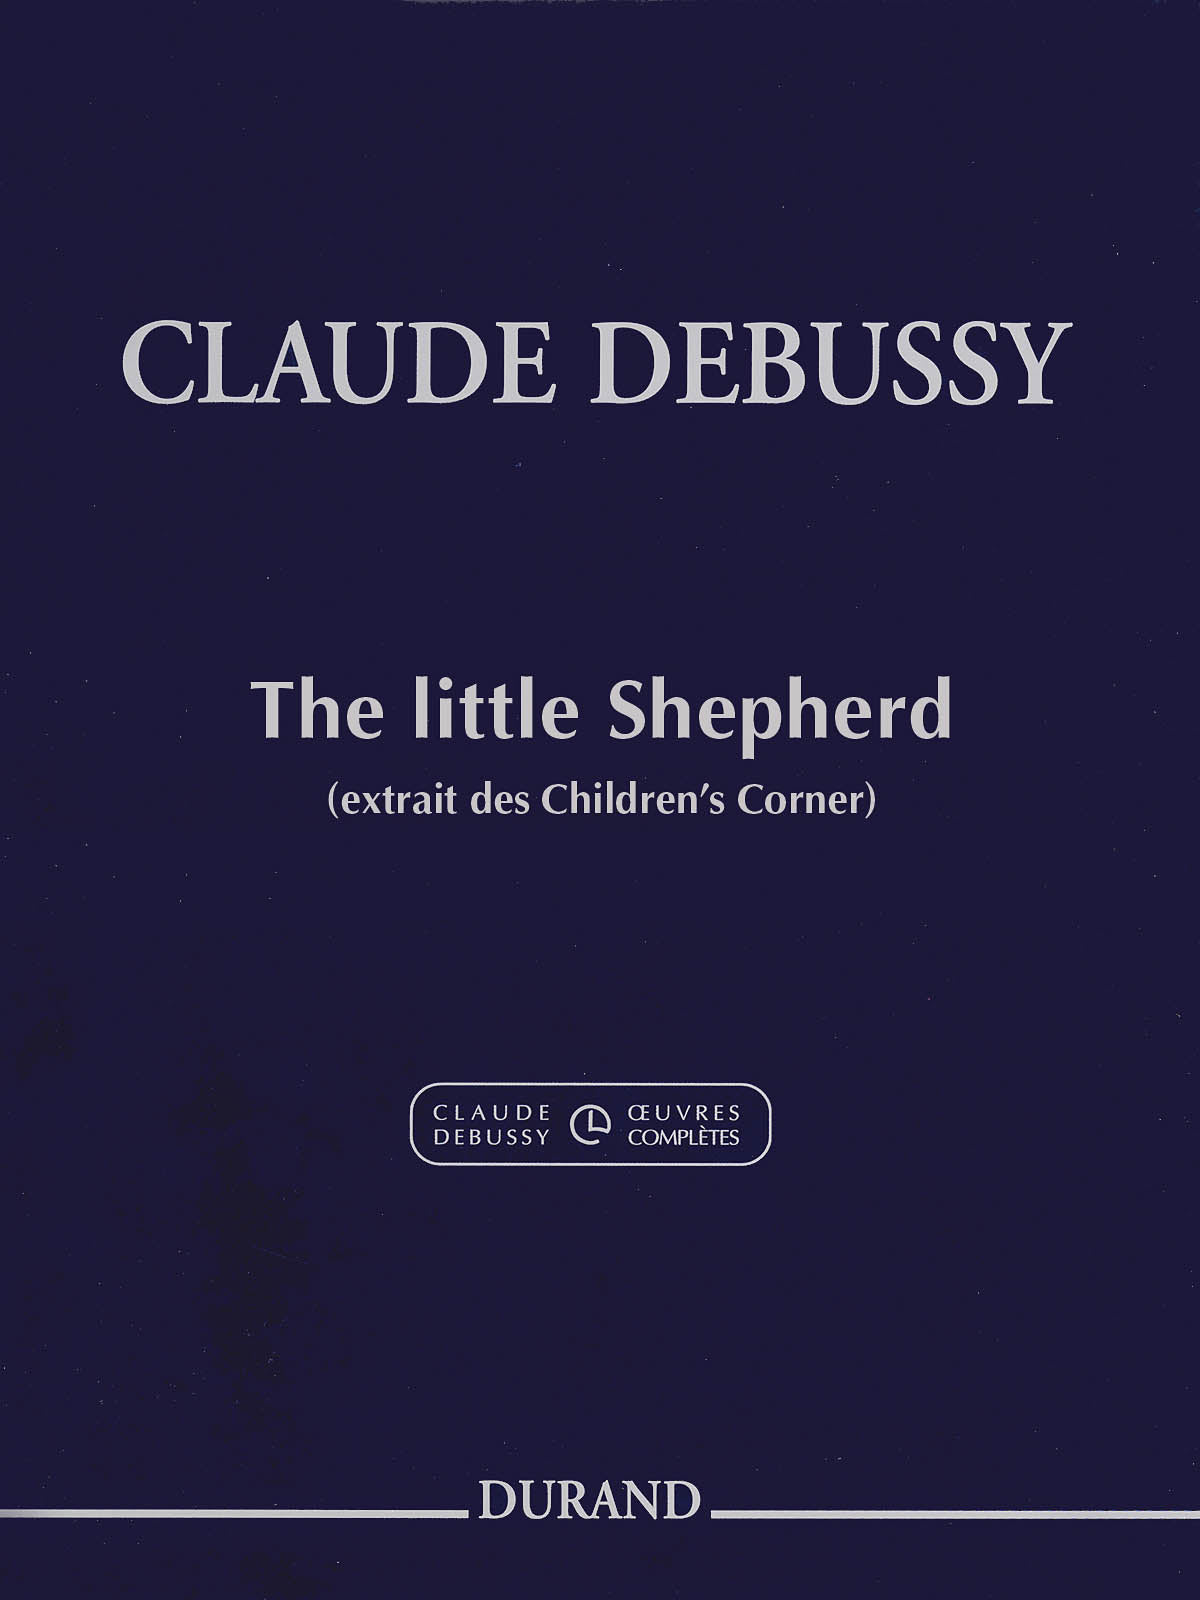 Debussy: The Little Shepherd